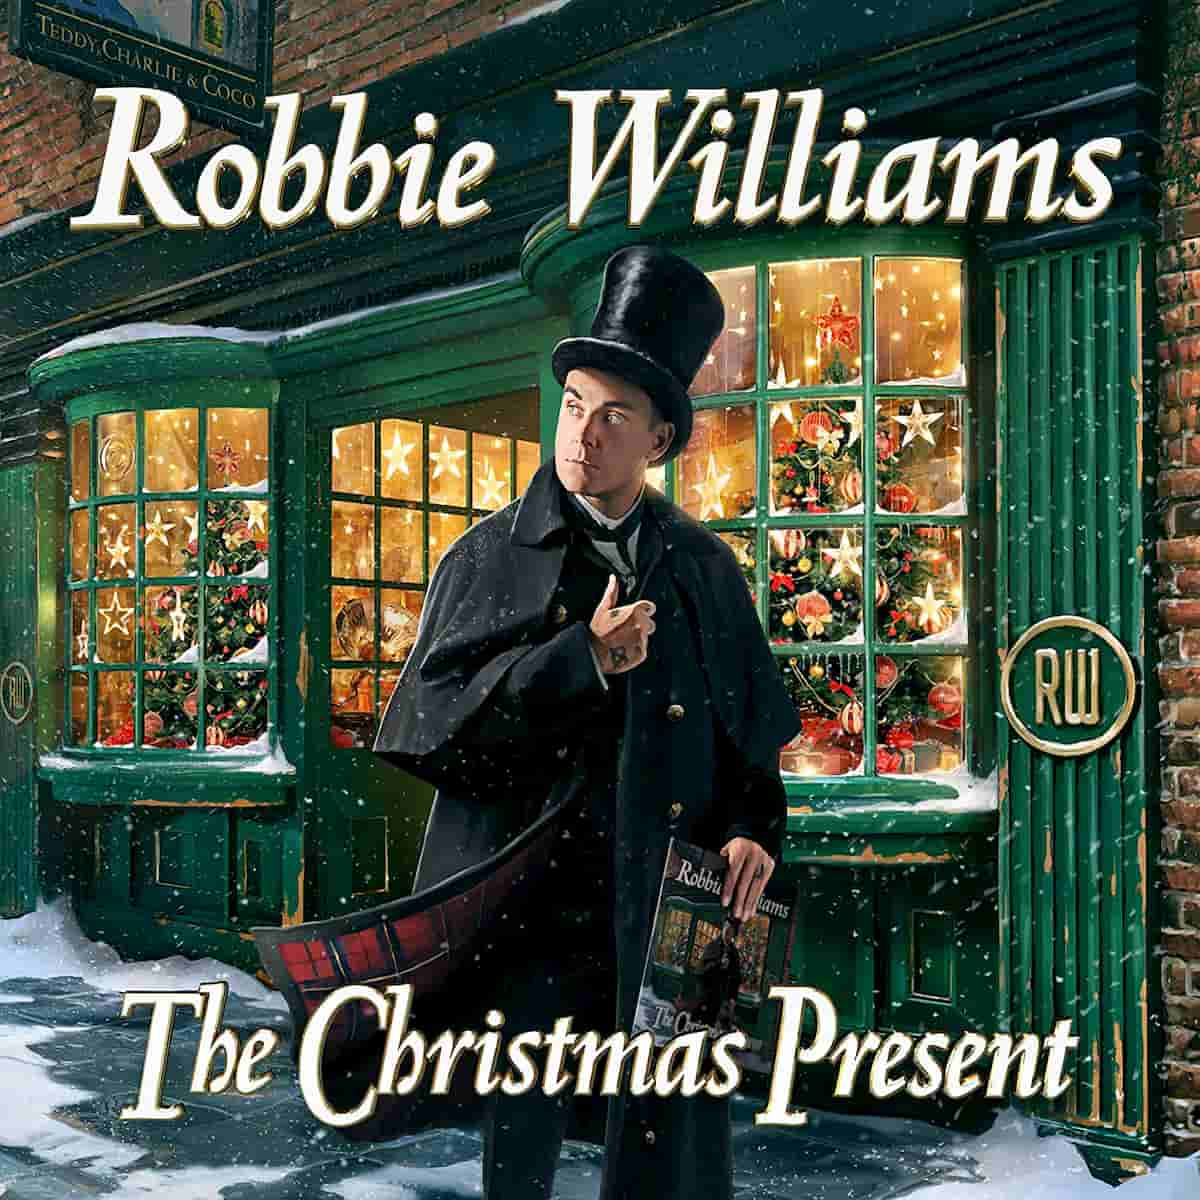 Robbie Williams Weihnachsts-CD The Christmas Present